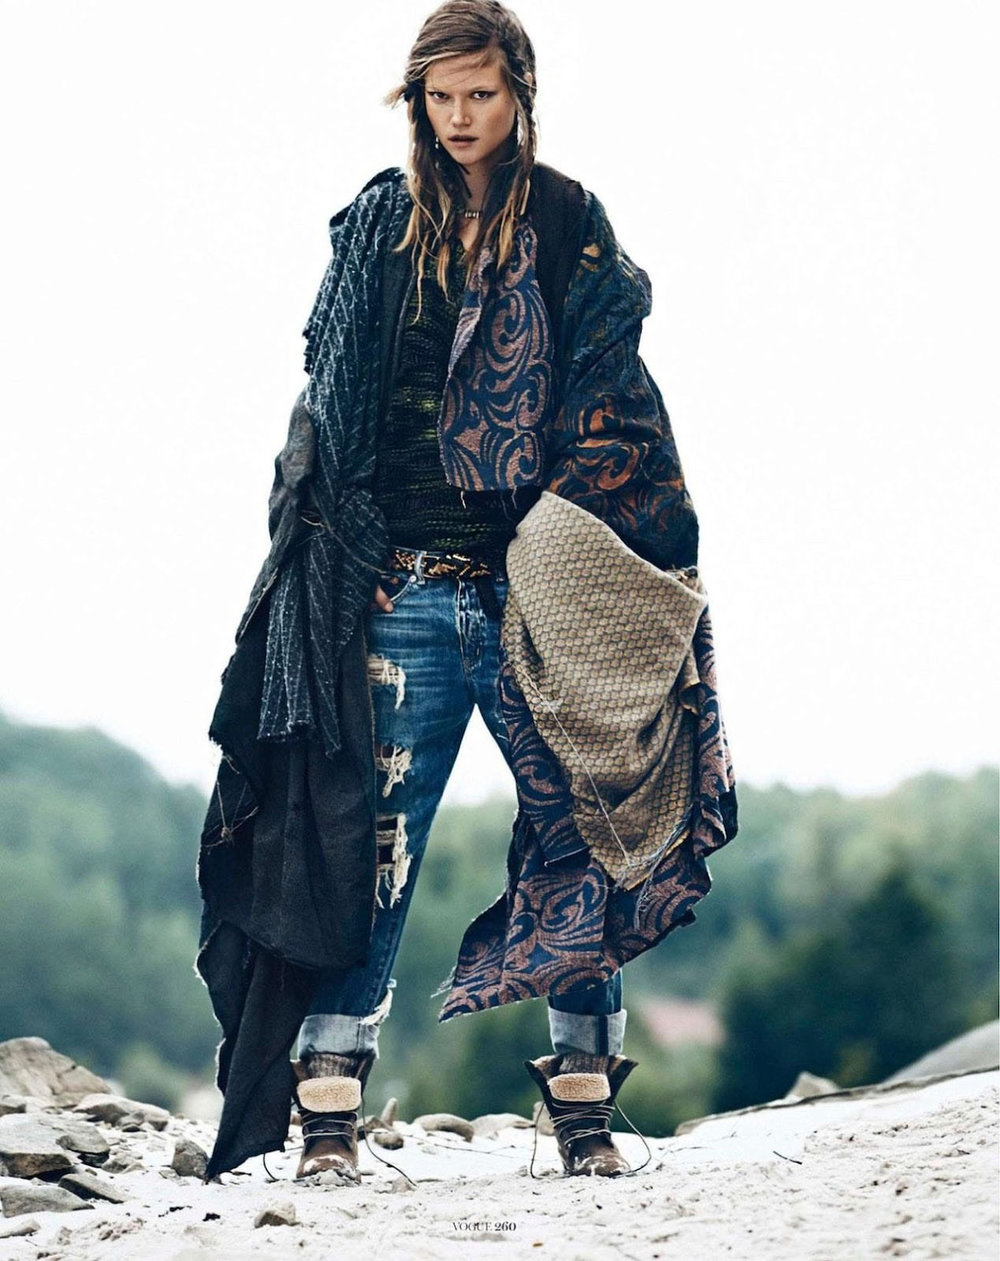 RALPH LAUREN DENIM + SUPPLY   VOGUE PARIS  SEPTEMBER 2013